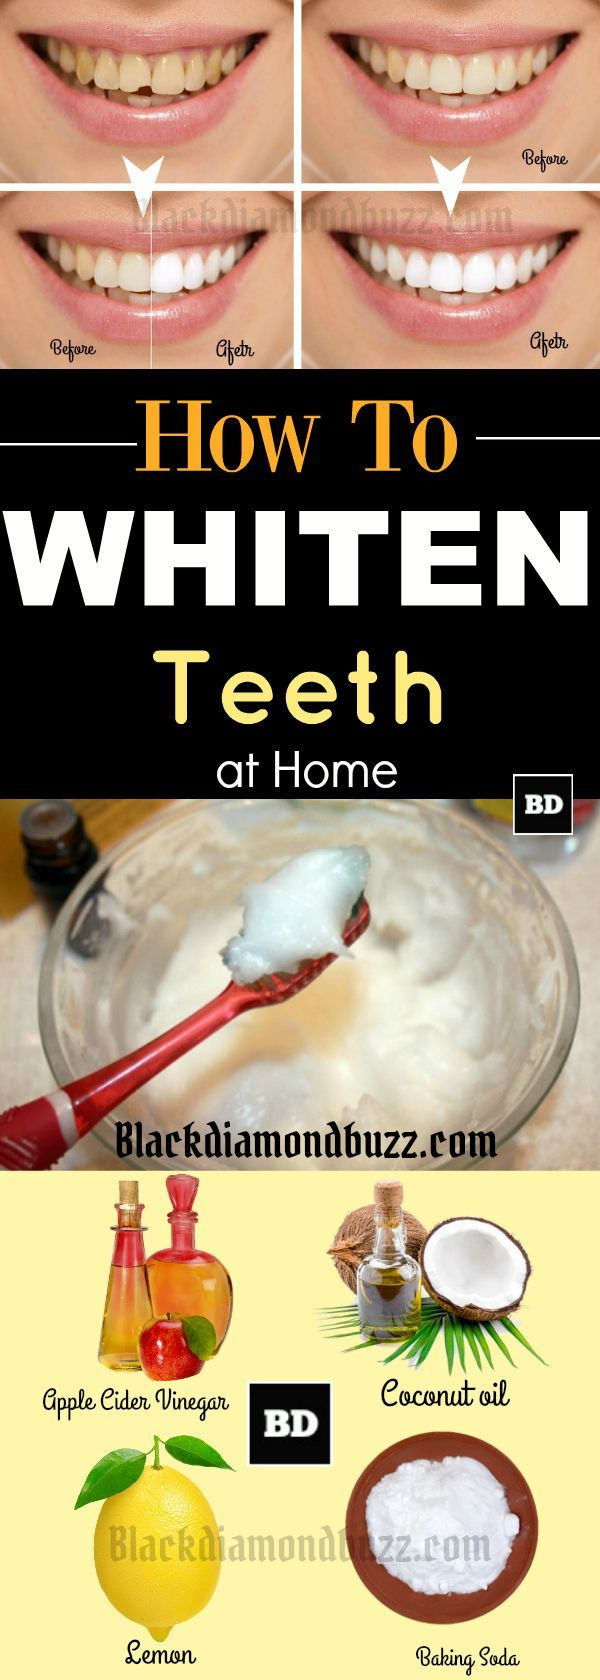 Do you want to make your teeth white fast and get rid of yellow teeth? Then here are how to whiten your teeth in 5 minutes naturally. These home remedies for whiter teeth work instantly . Try it!